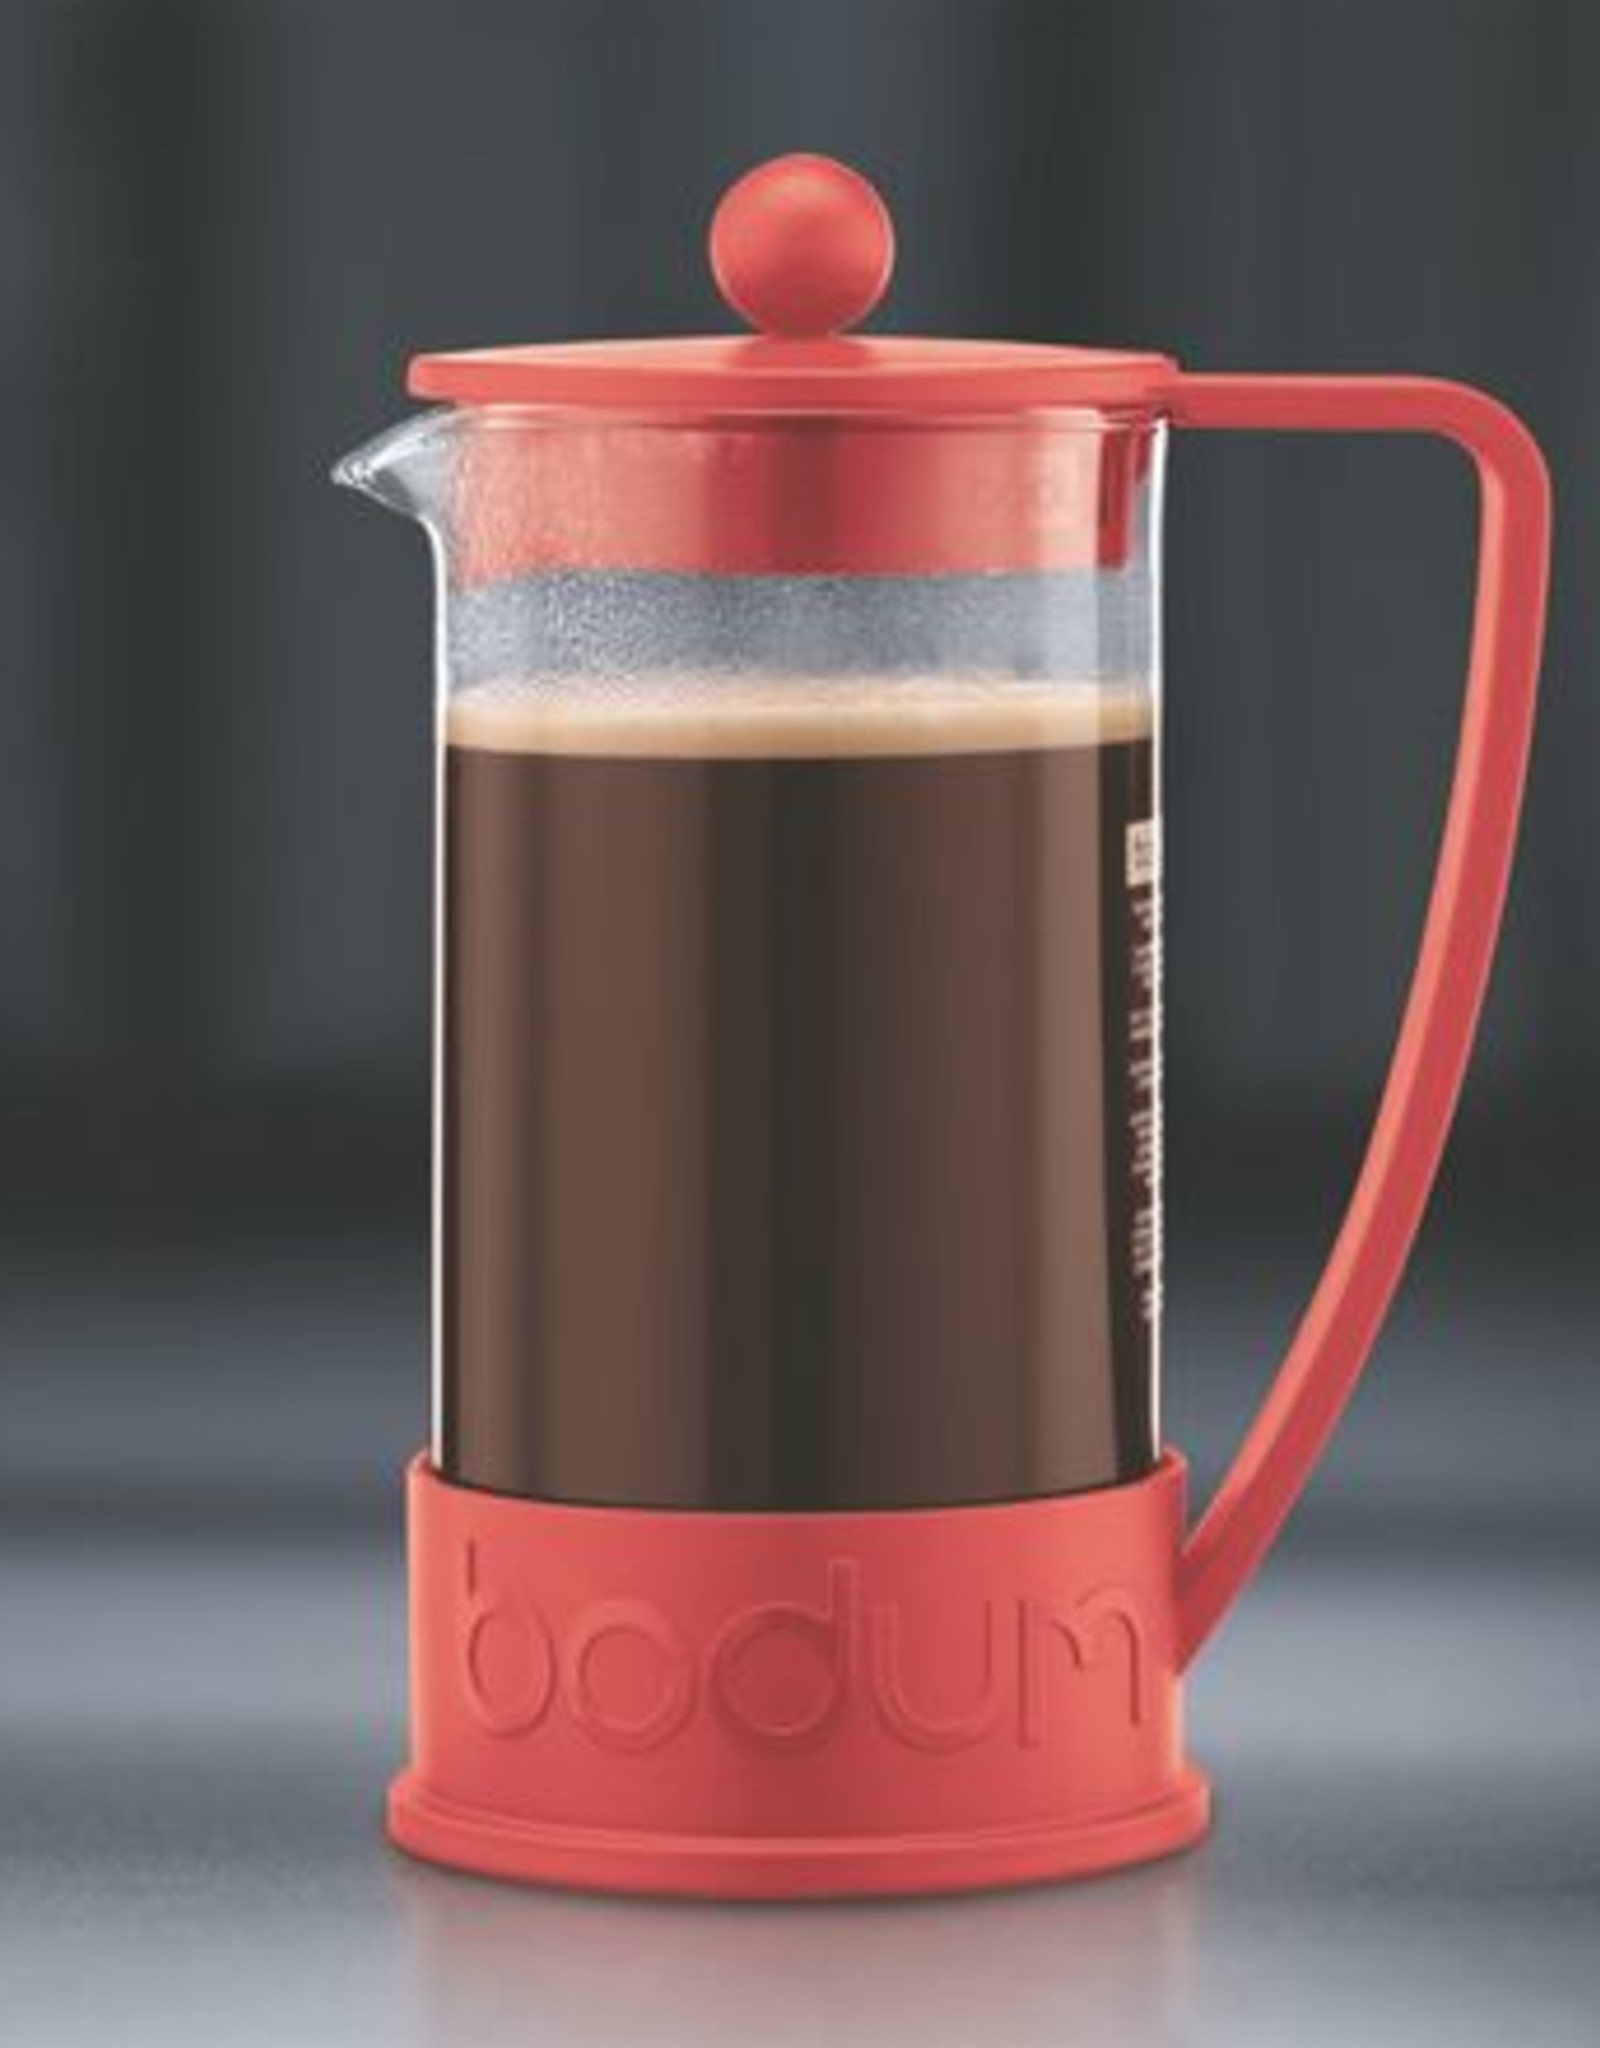 Bodum Brazil red